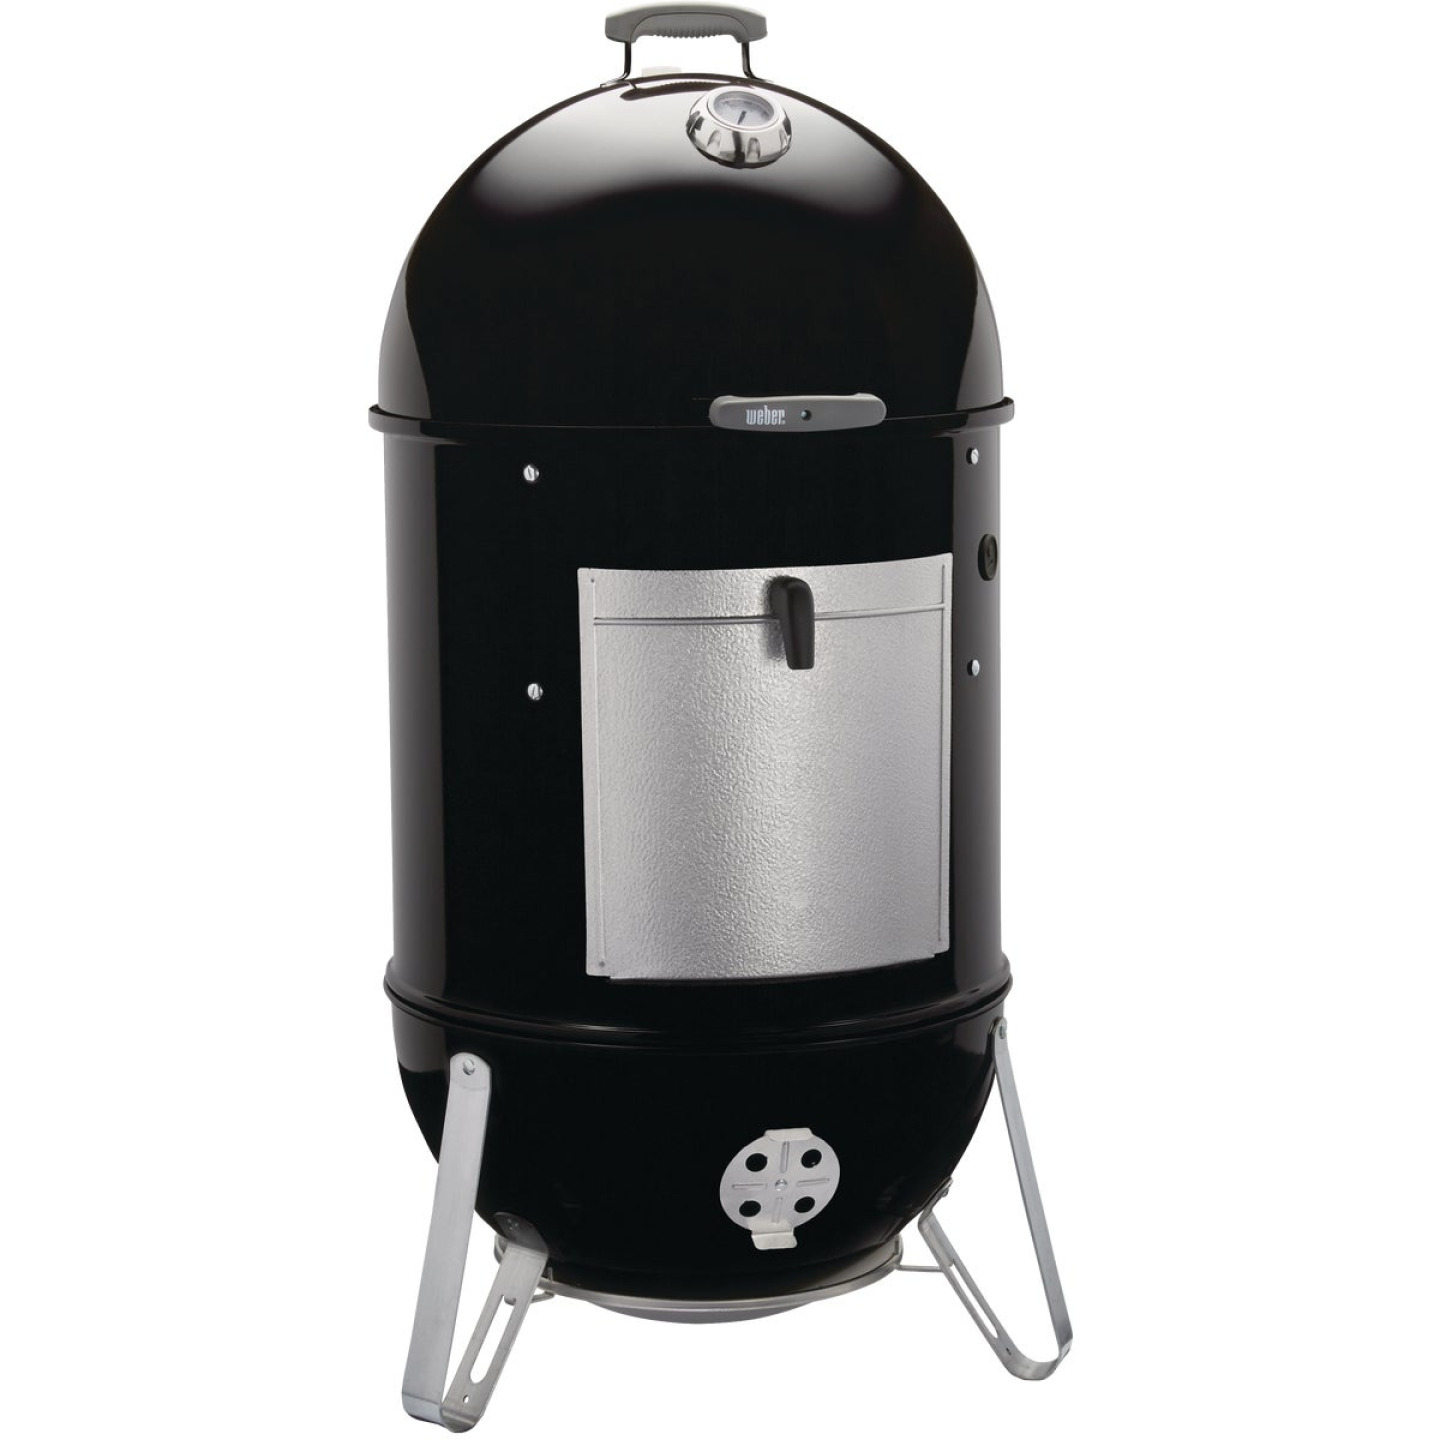 Weber Smokey Mountain Cooker 22 In. Dia. 726 Sq. In. Vertical Charcoal Smoker Image 1